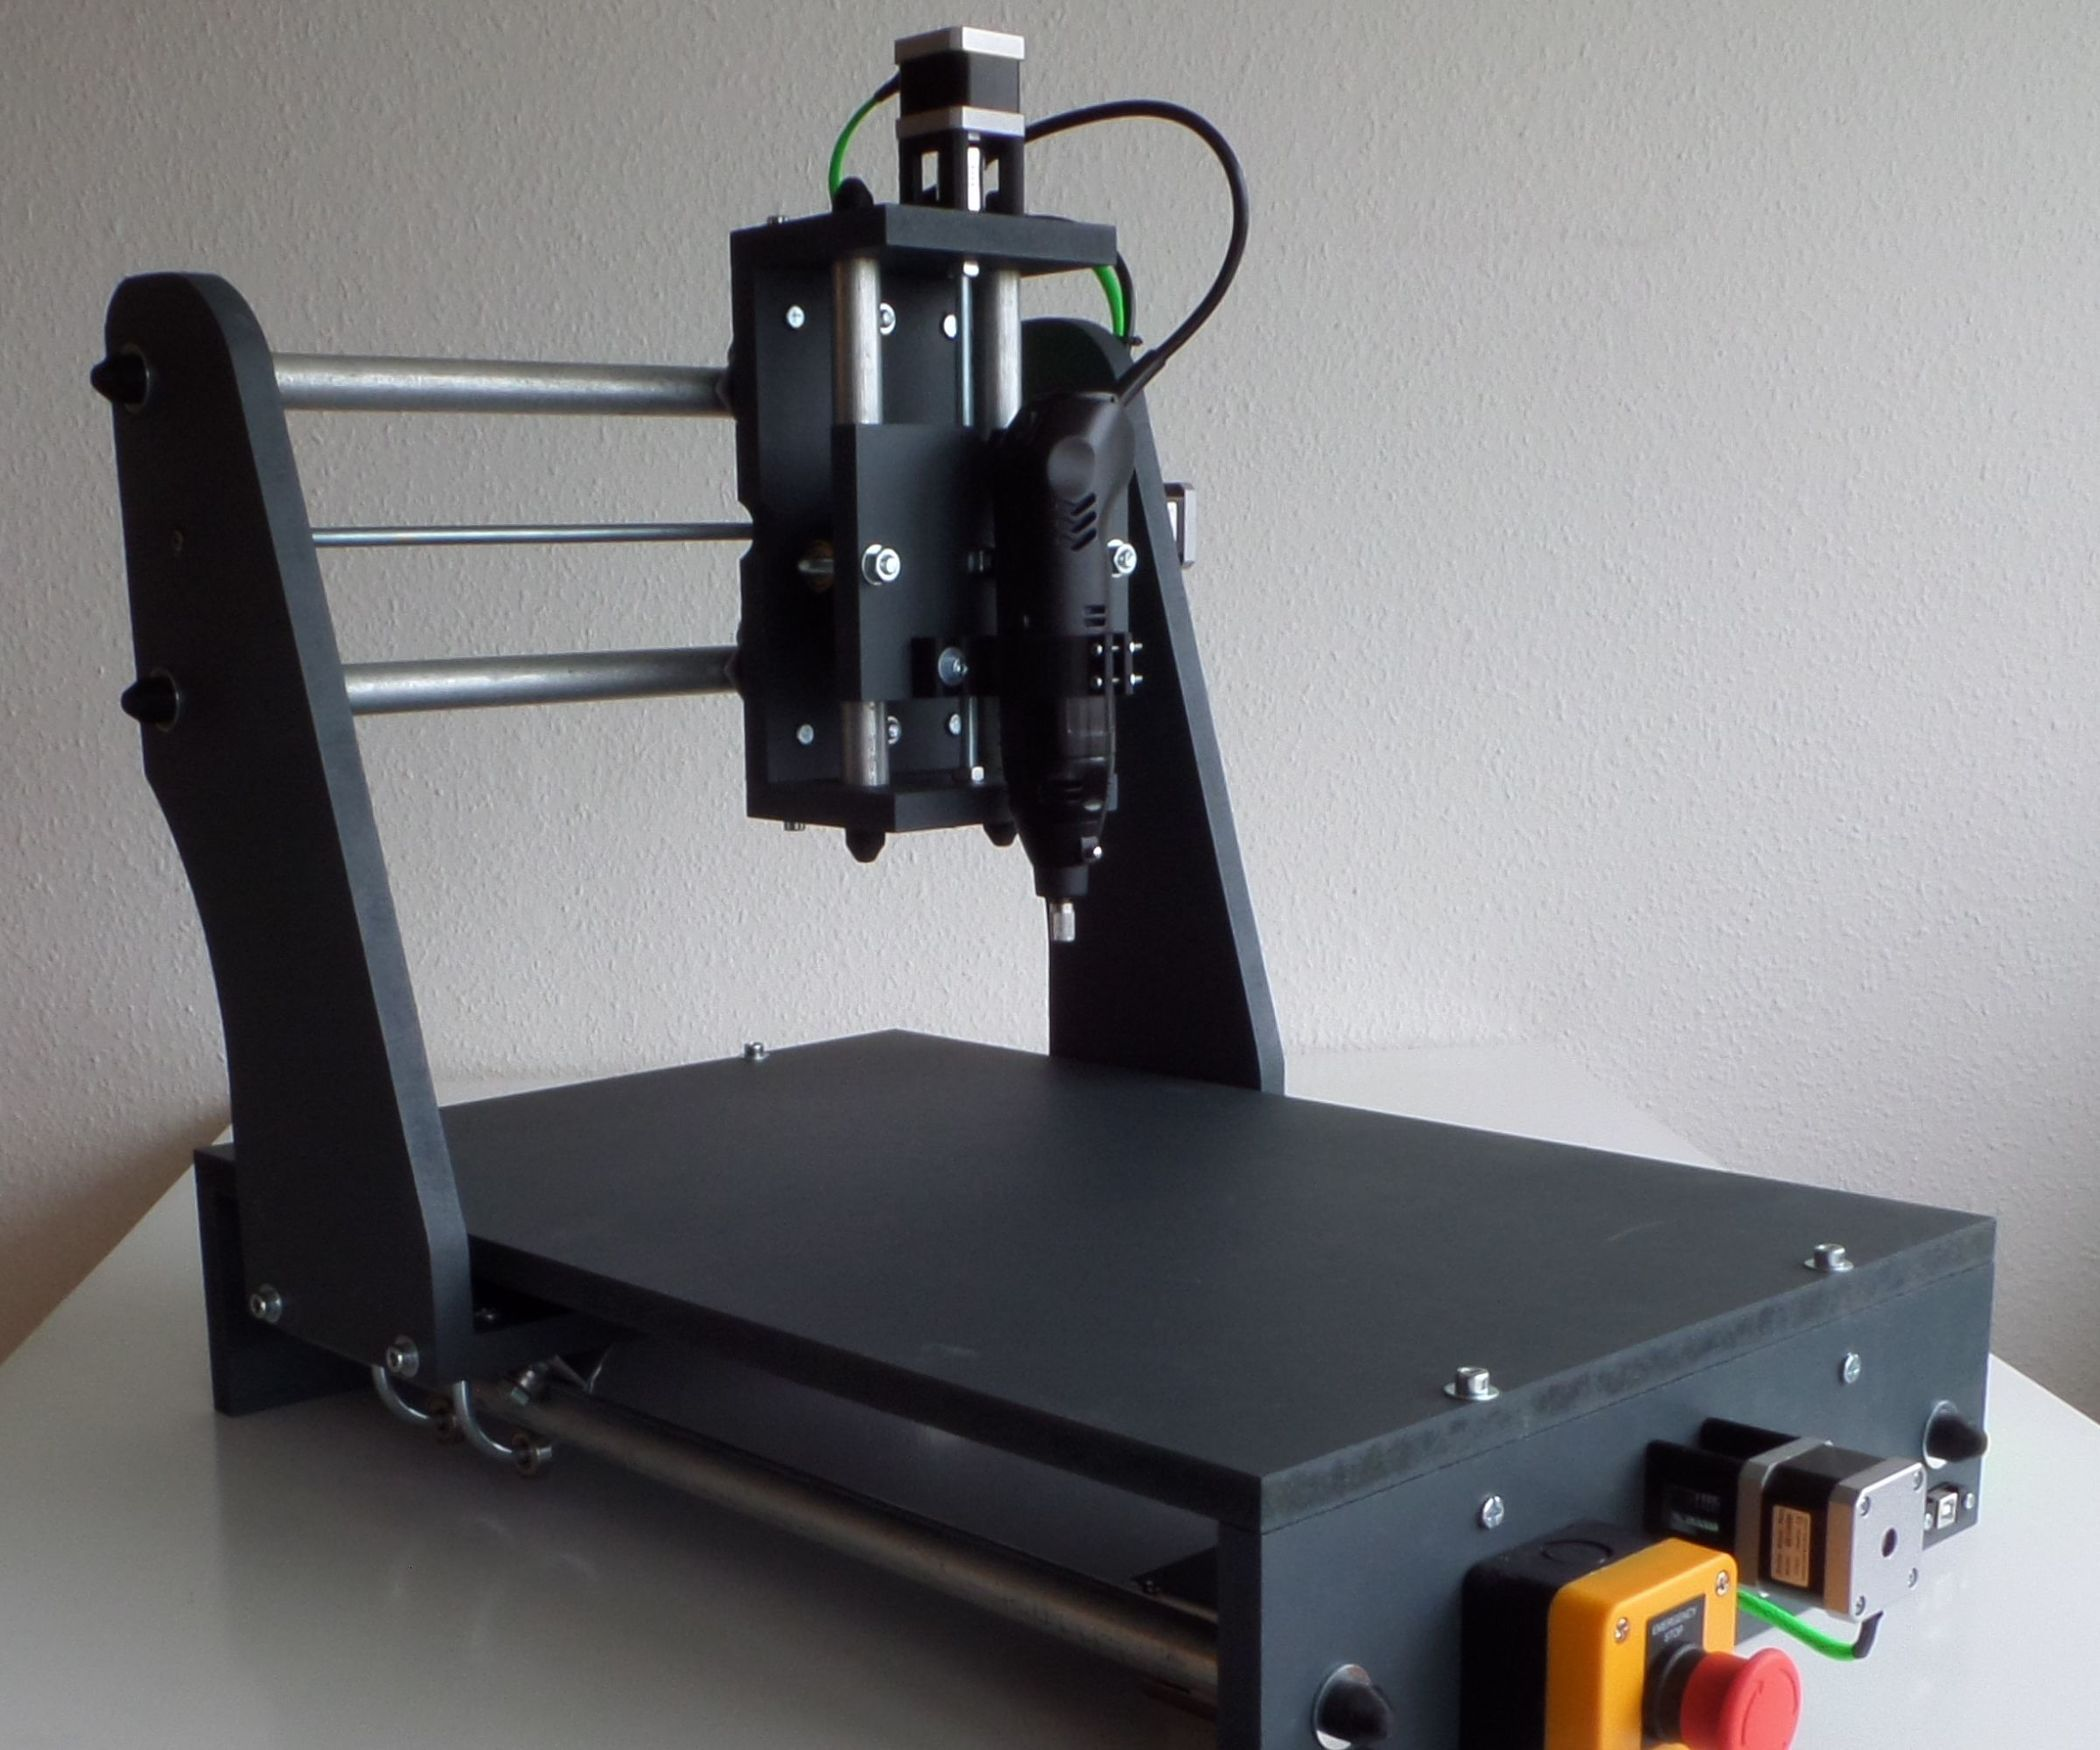 Low Budget CNC Diy cnc router, Diy cnc, Cheap cnc machine